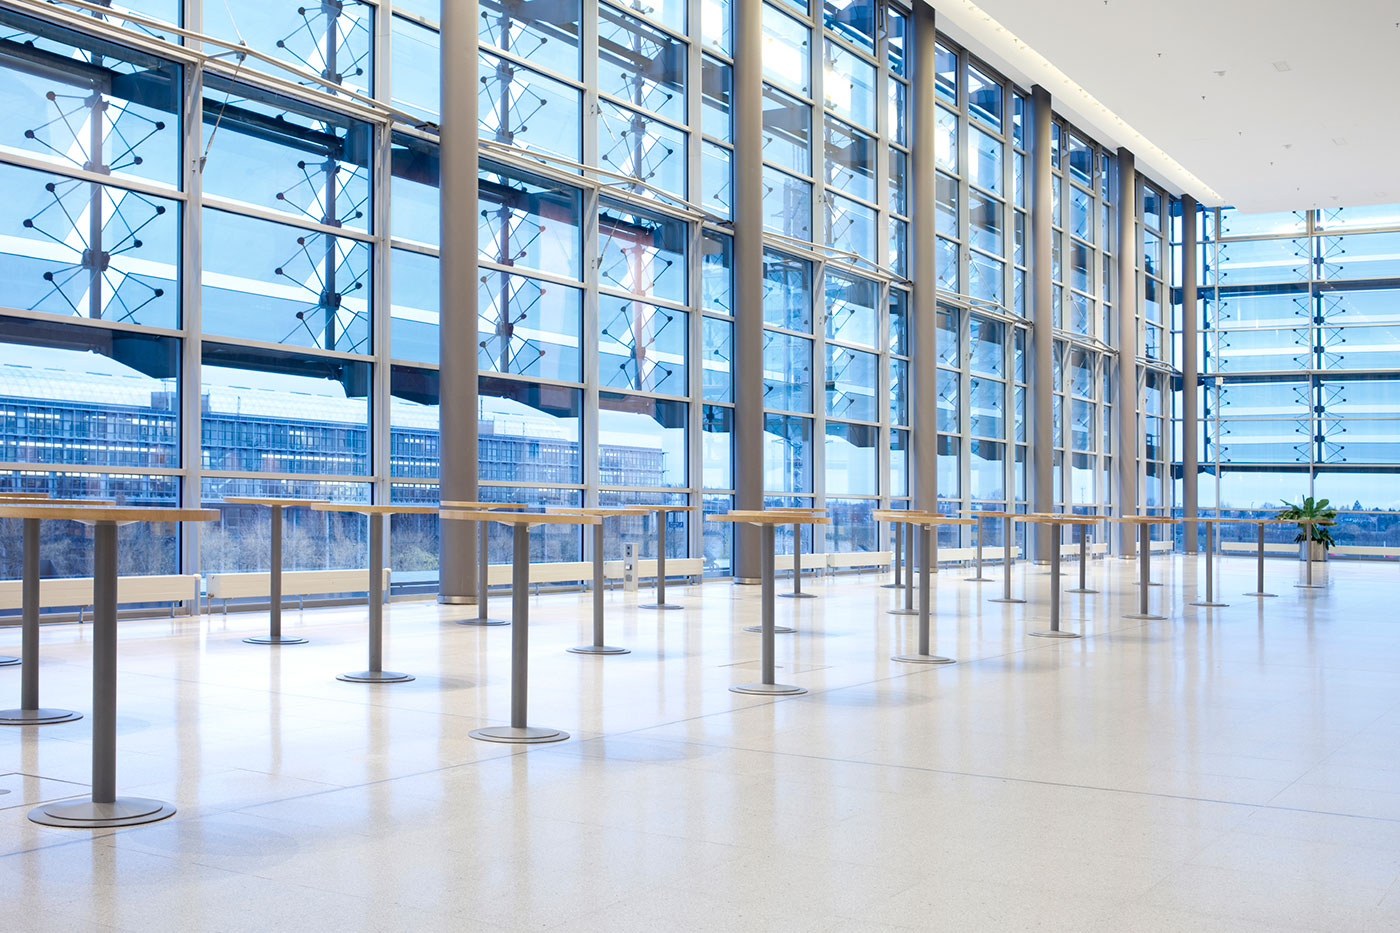 Glass Curtain Wall Manufacturer Curtain Wall Manufacturers Uk Listitdallas